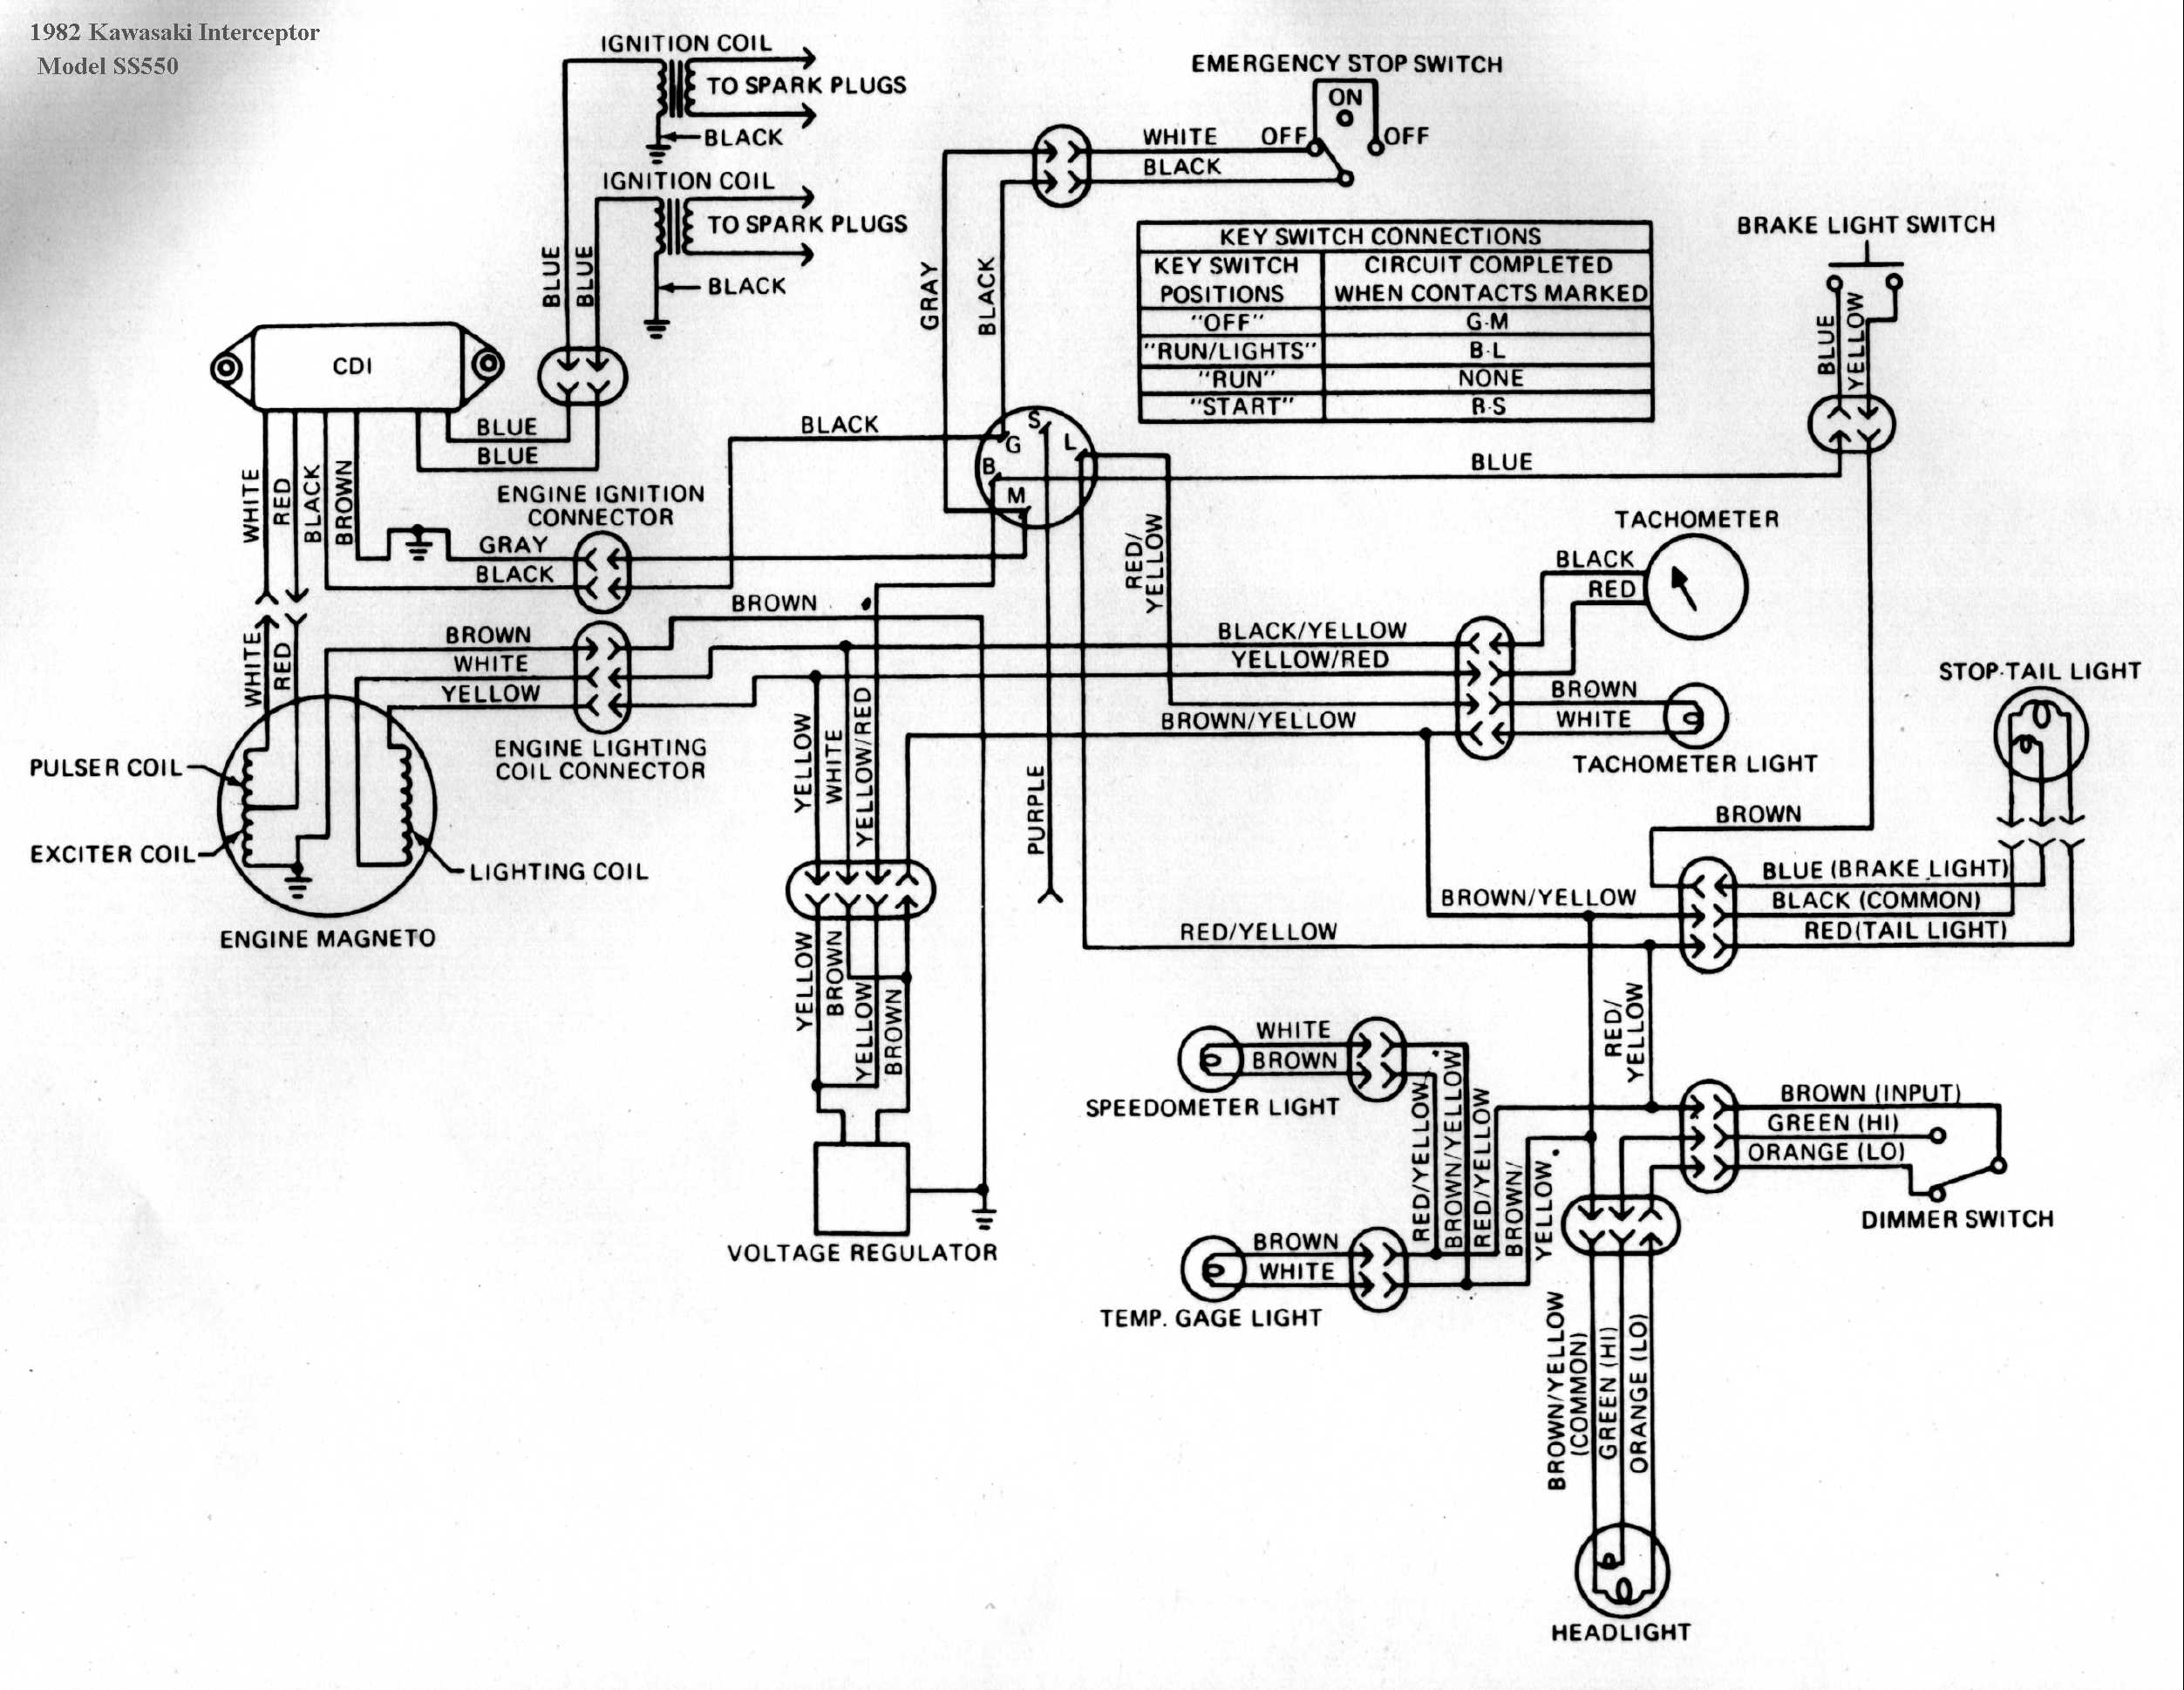 ss550?resize=665%2C514 2006 ski doo rev wiring diagram wiring diagram 1990 ski-doo safari wiring diagram at bakdesigns.co